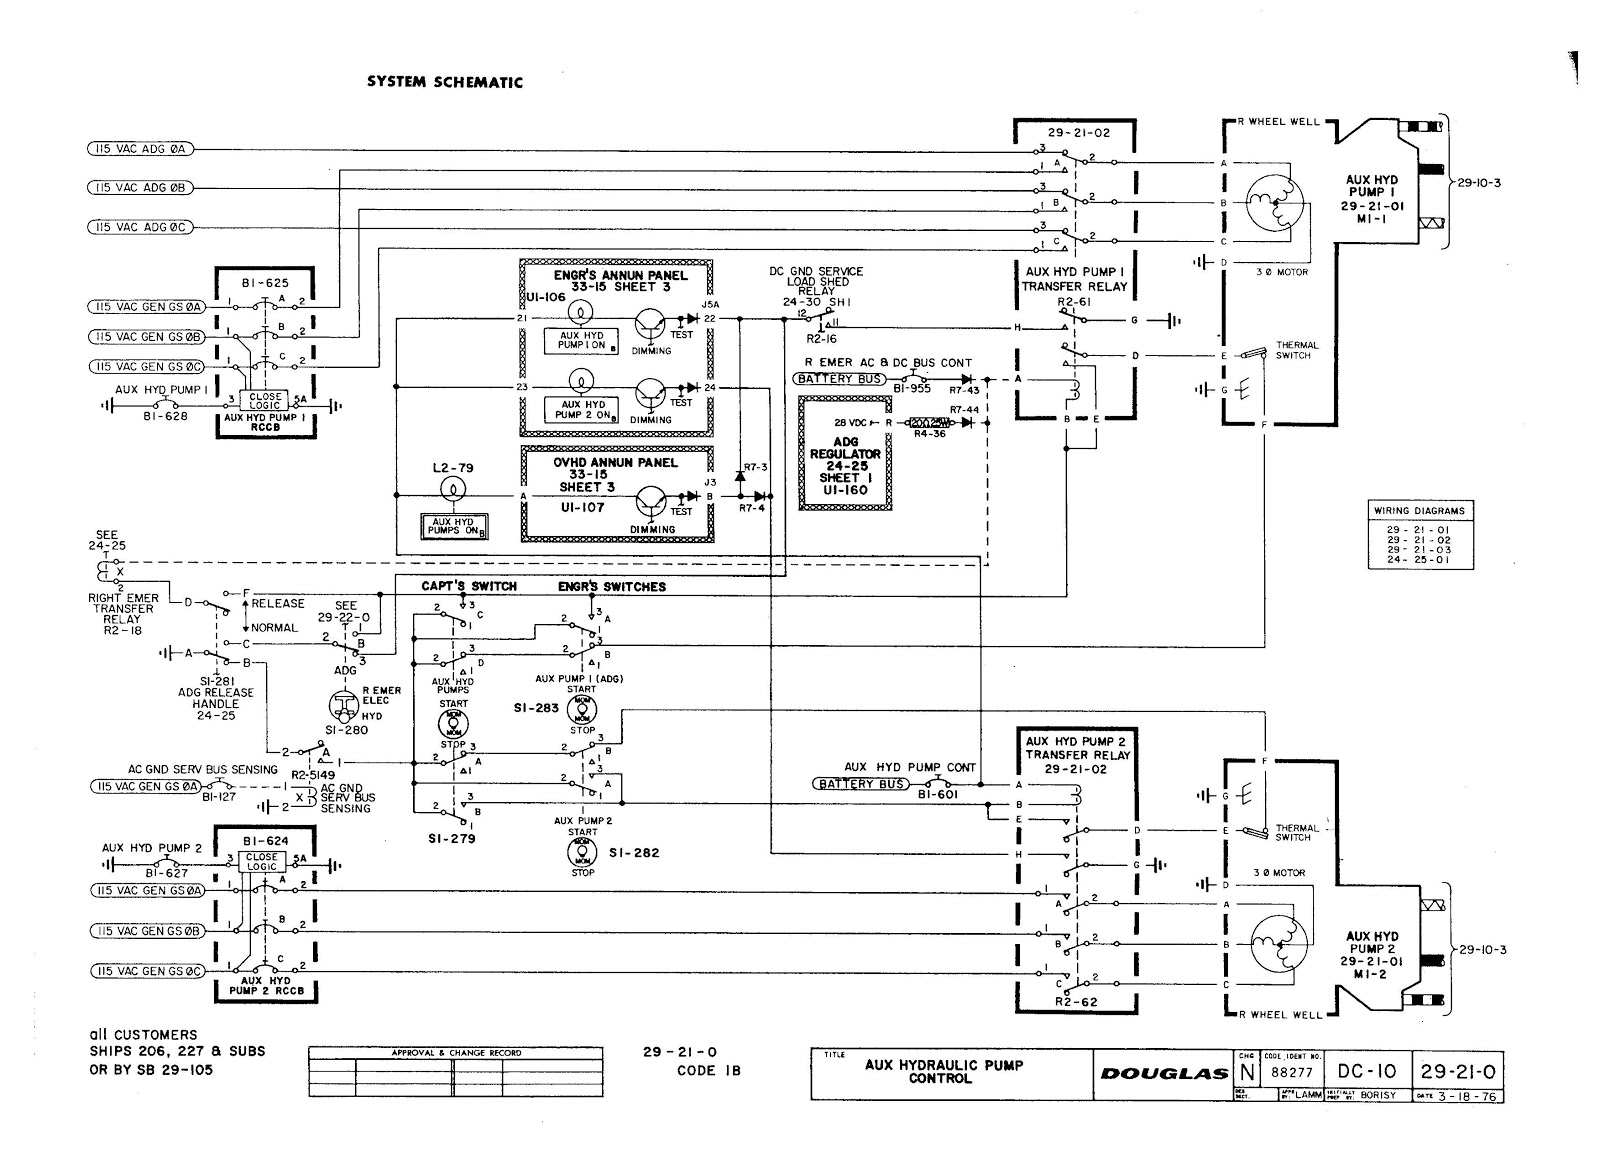 aviation system wiring diagram car wiring diagrams explained u2022 rh ethermag co Switch Wiring Diagram Wiring-Diagram Trane Split System